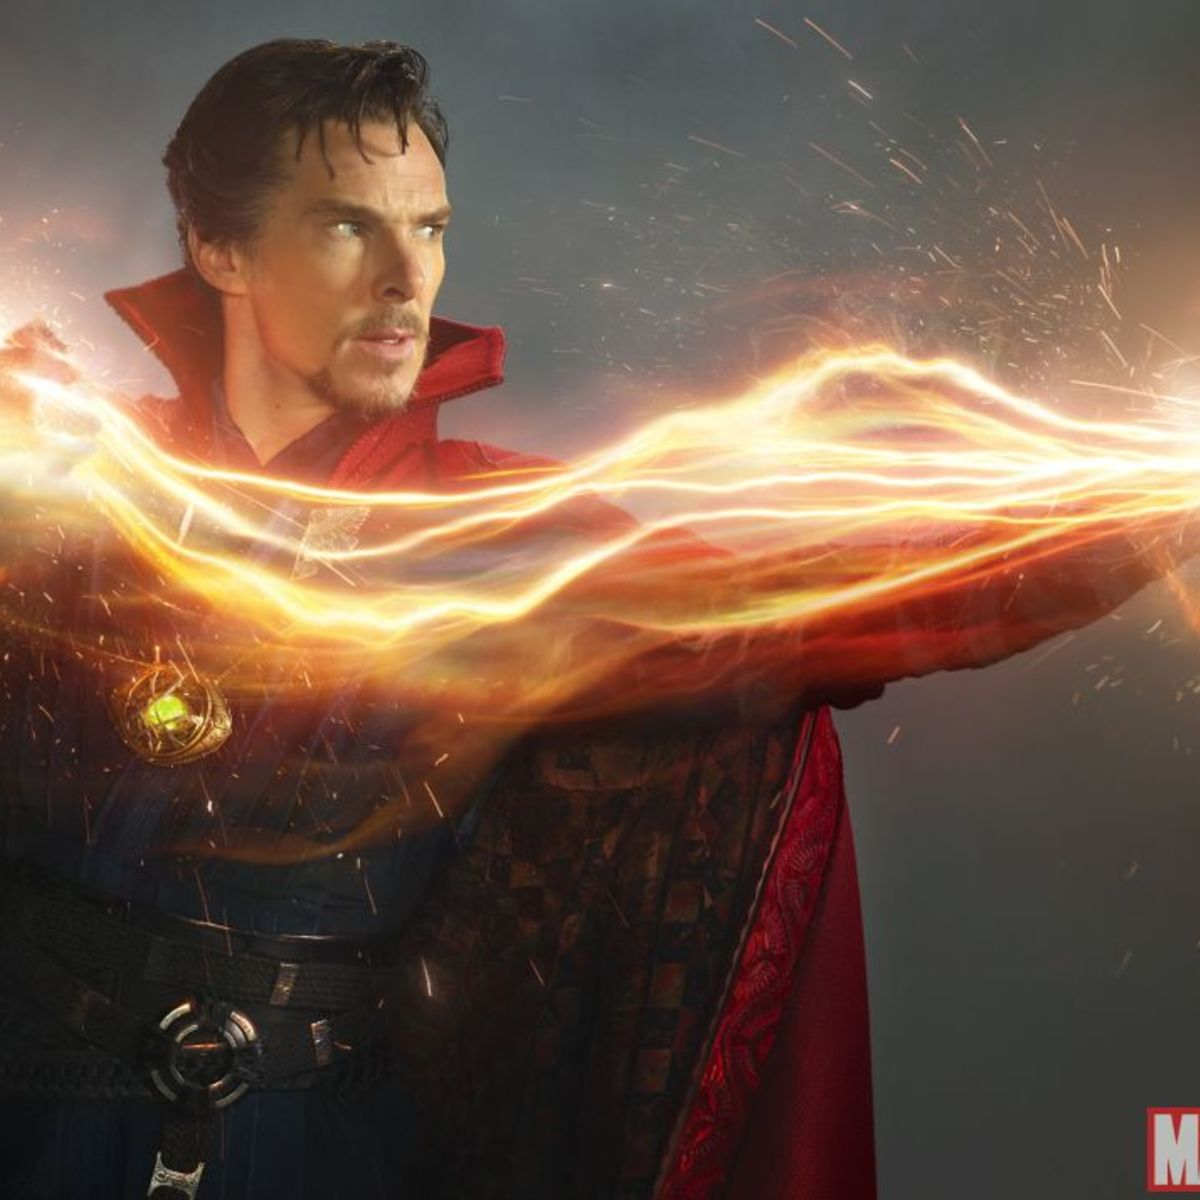 Stephen-Strange-Eye-of-Agamotto.jpg